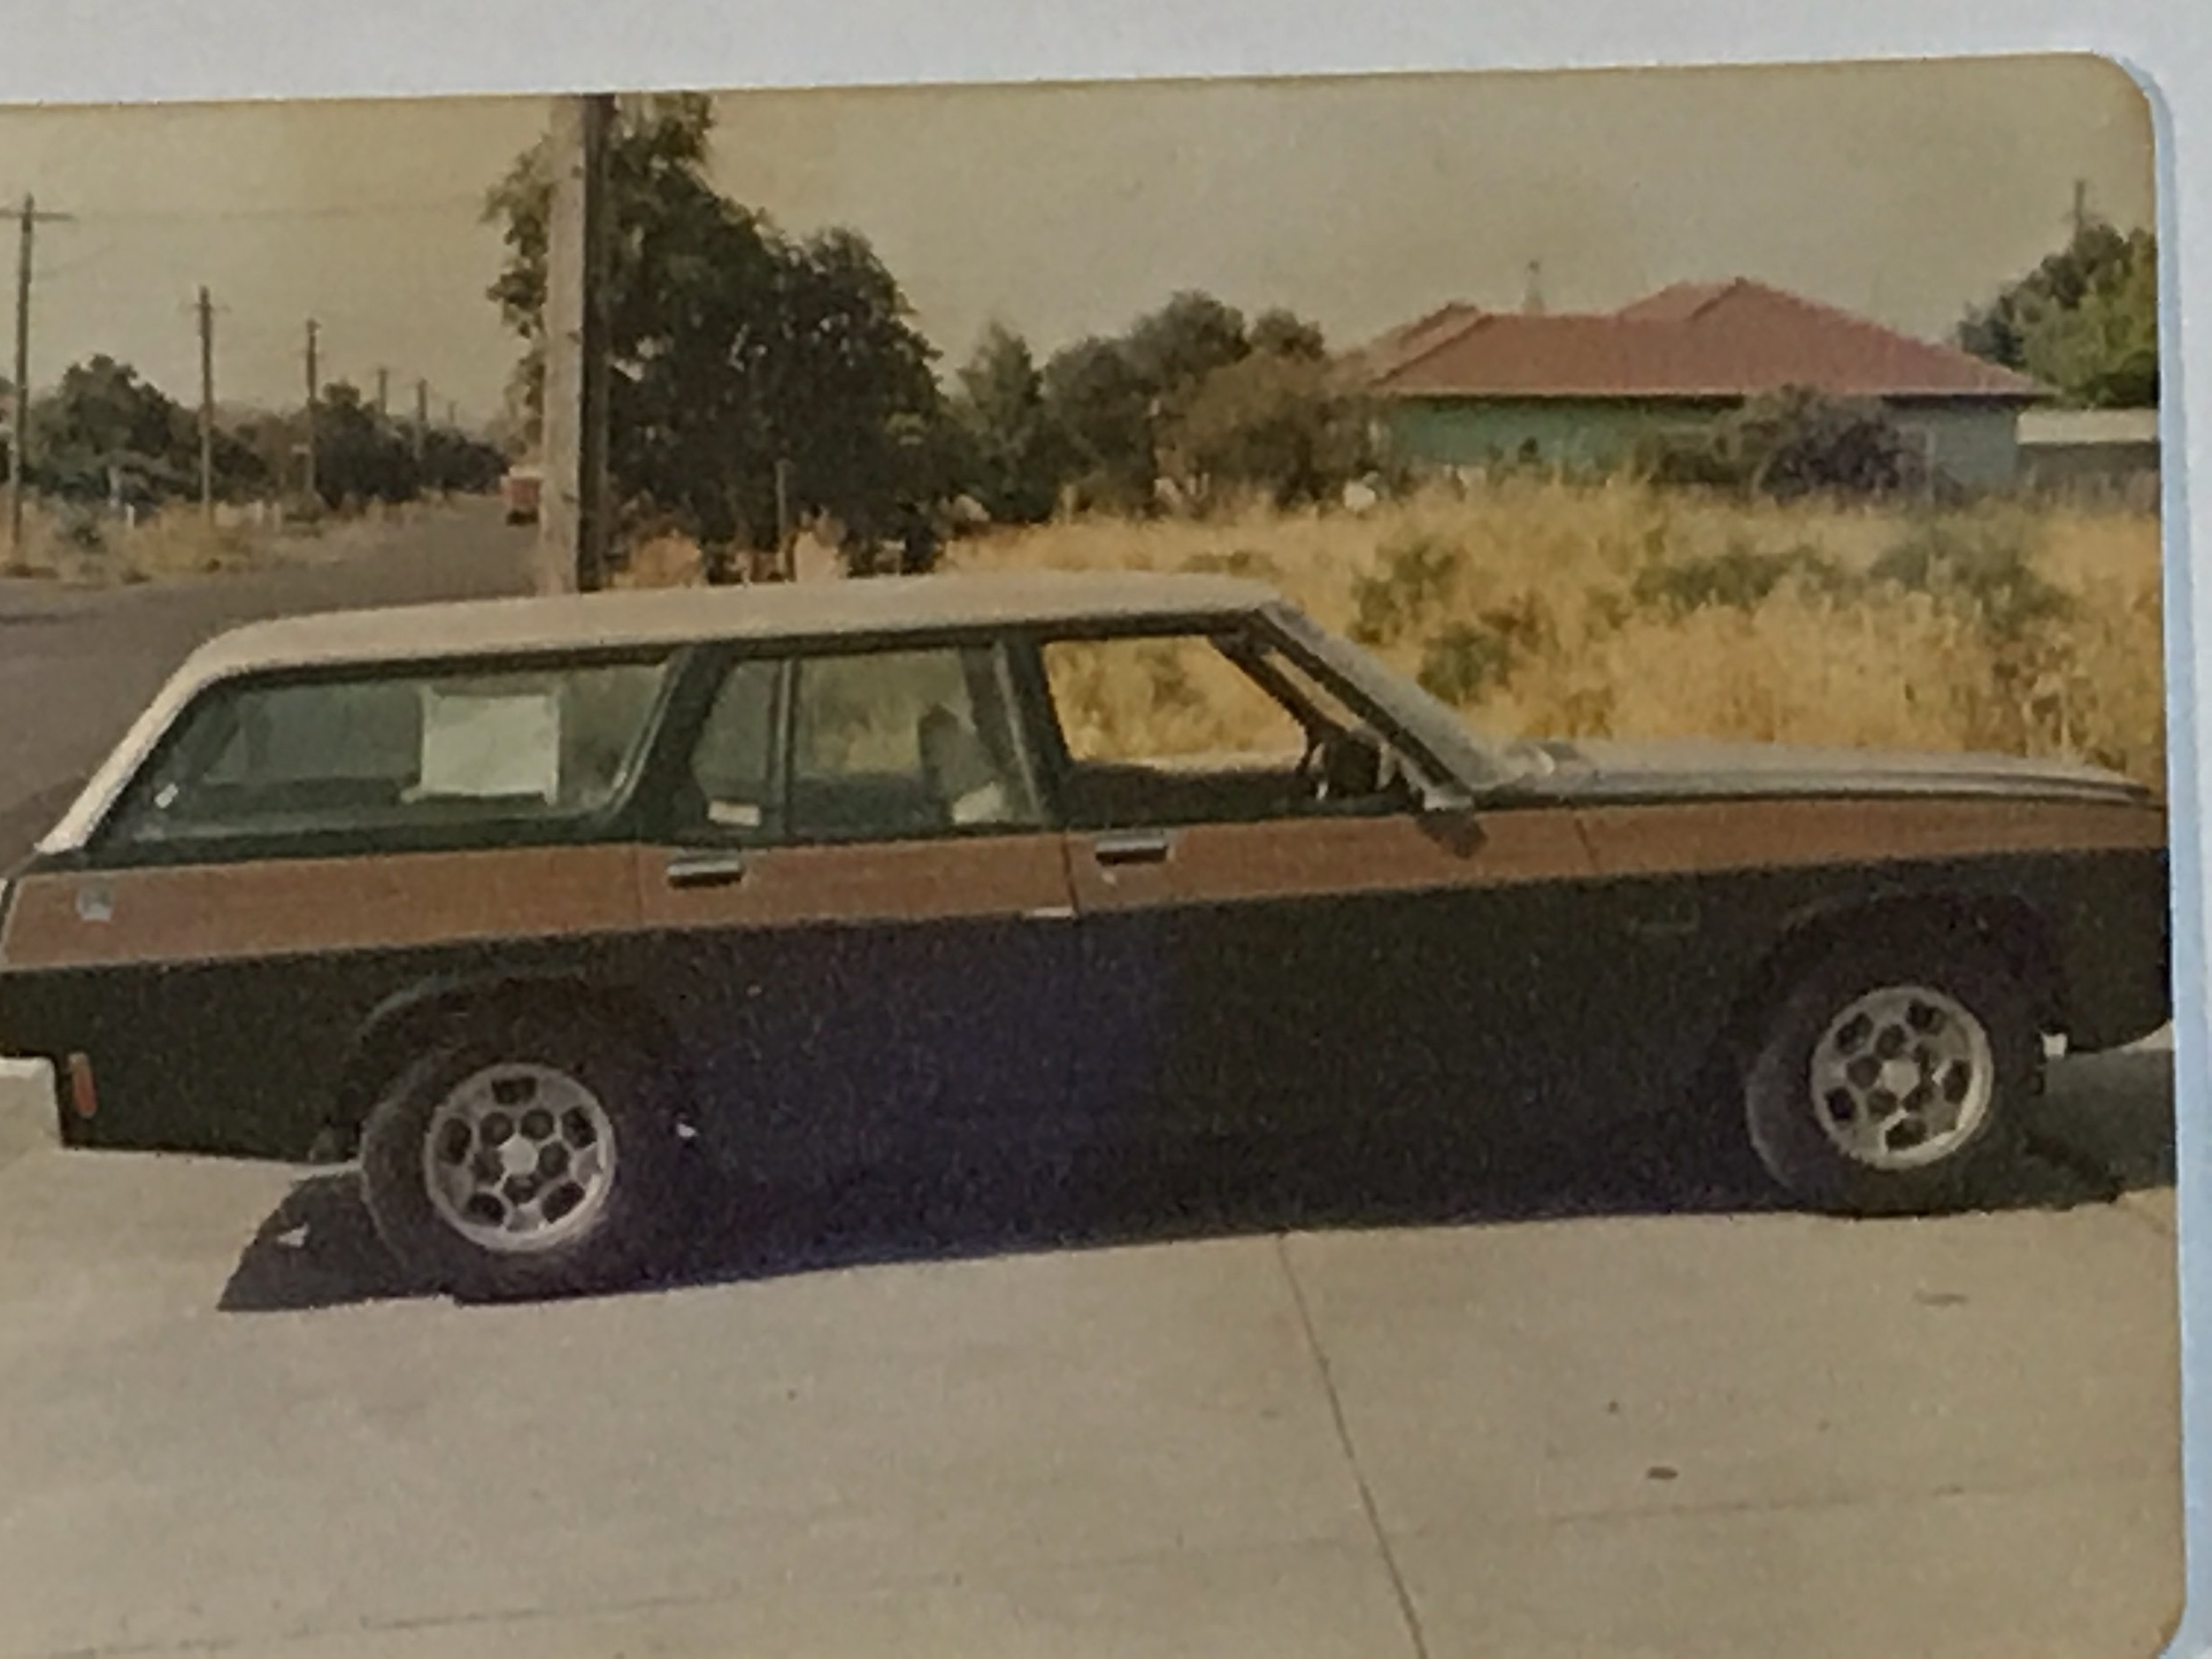 Woodgrain HQ Holden 1970s